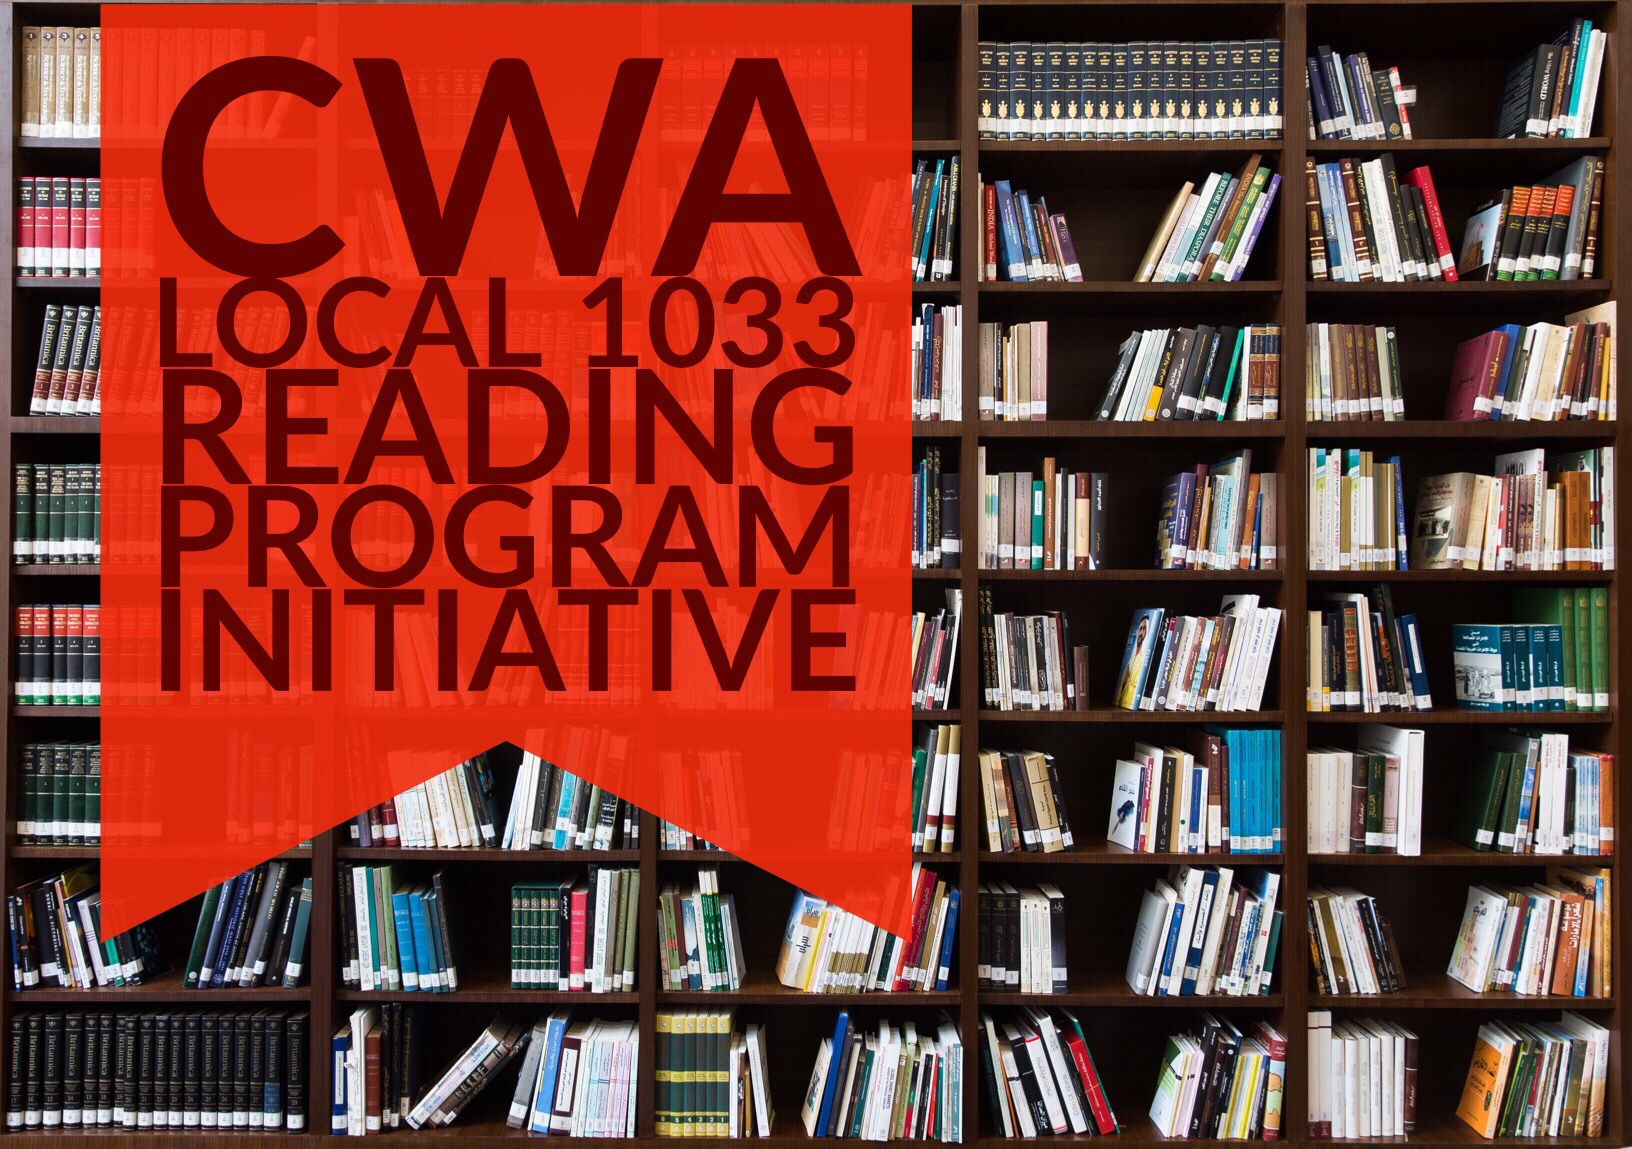 CWA Local 1033 Reading Program Initiative – NEW!!